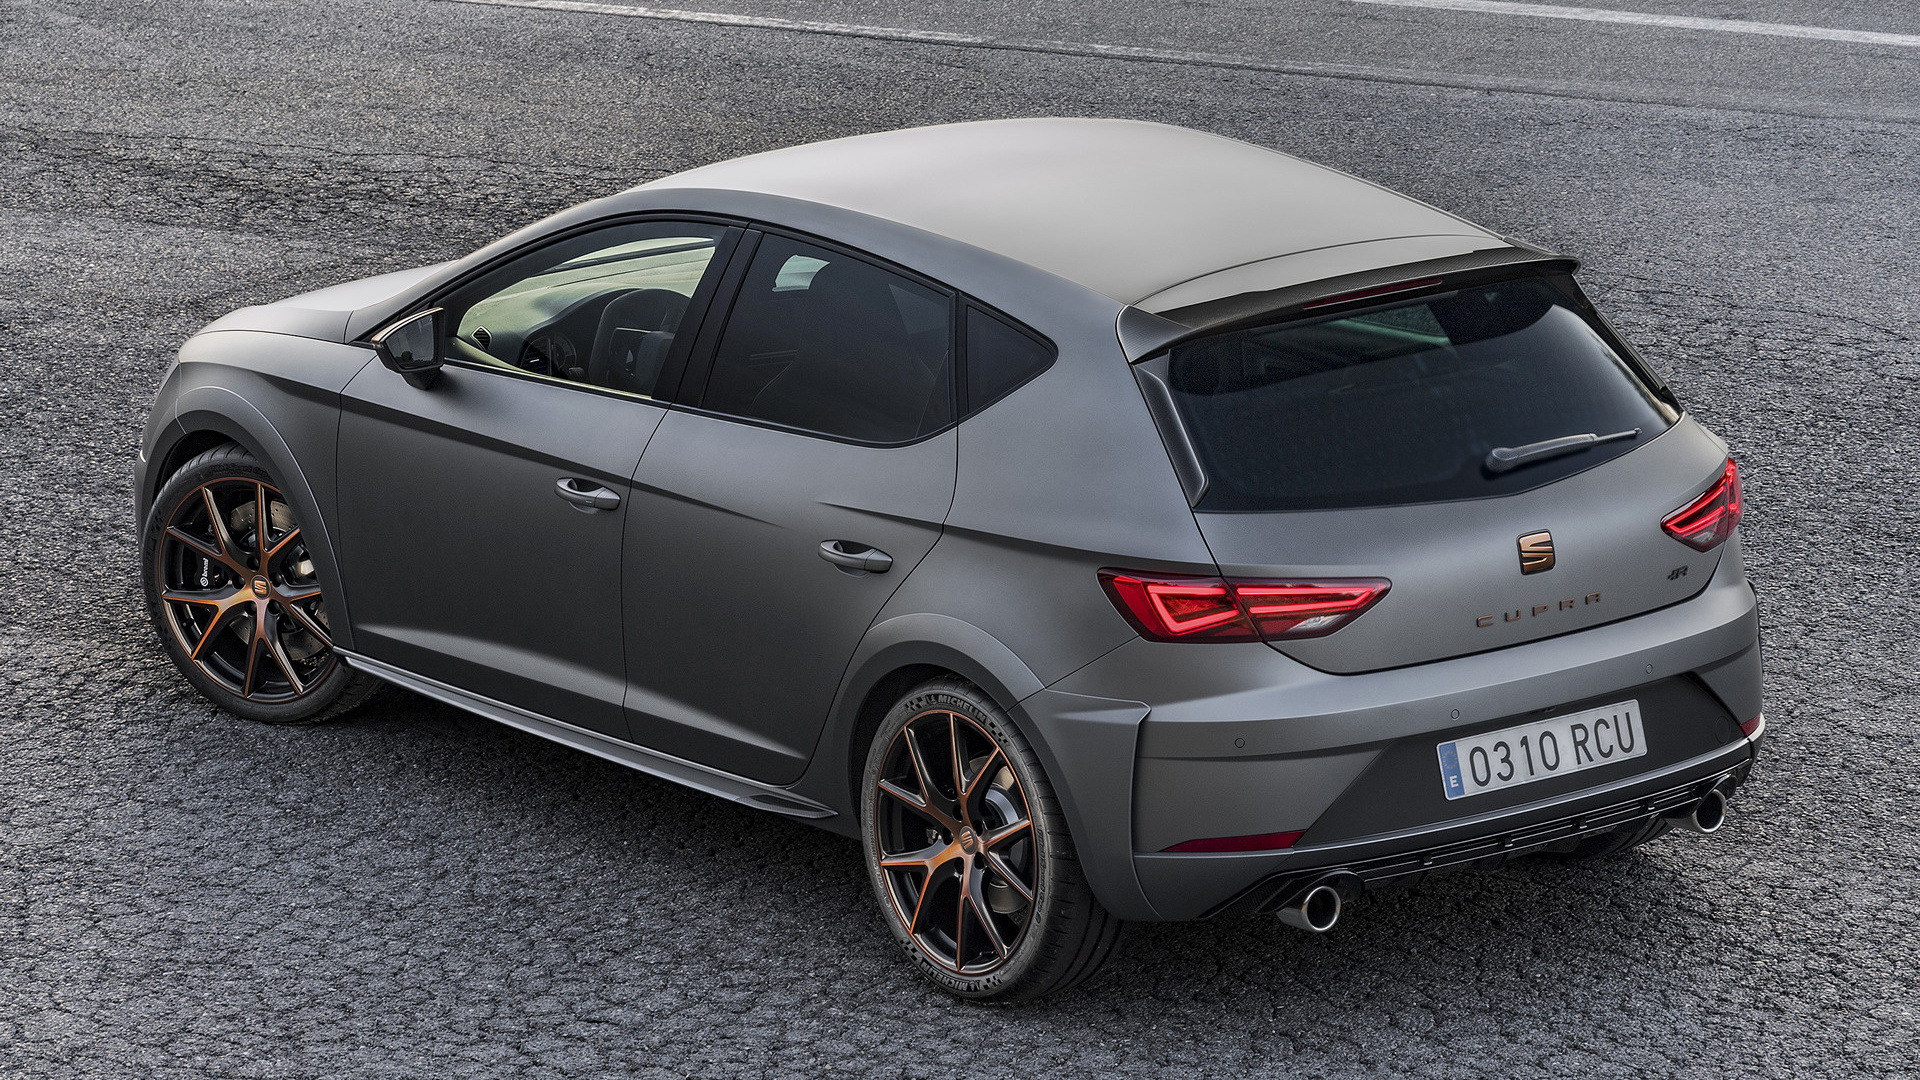 2017 seat leon cupra r wallpapers and hd images car pixel. Black Bedroom Furniture Sets. Home Design Ideas